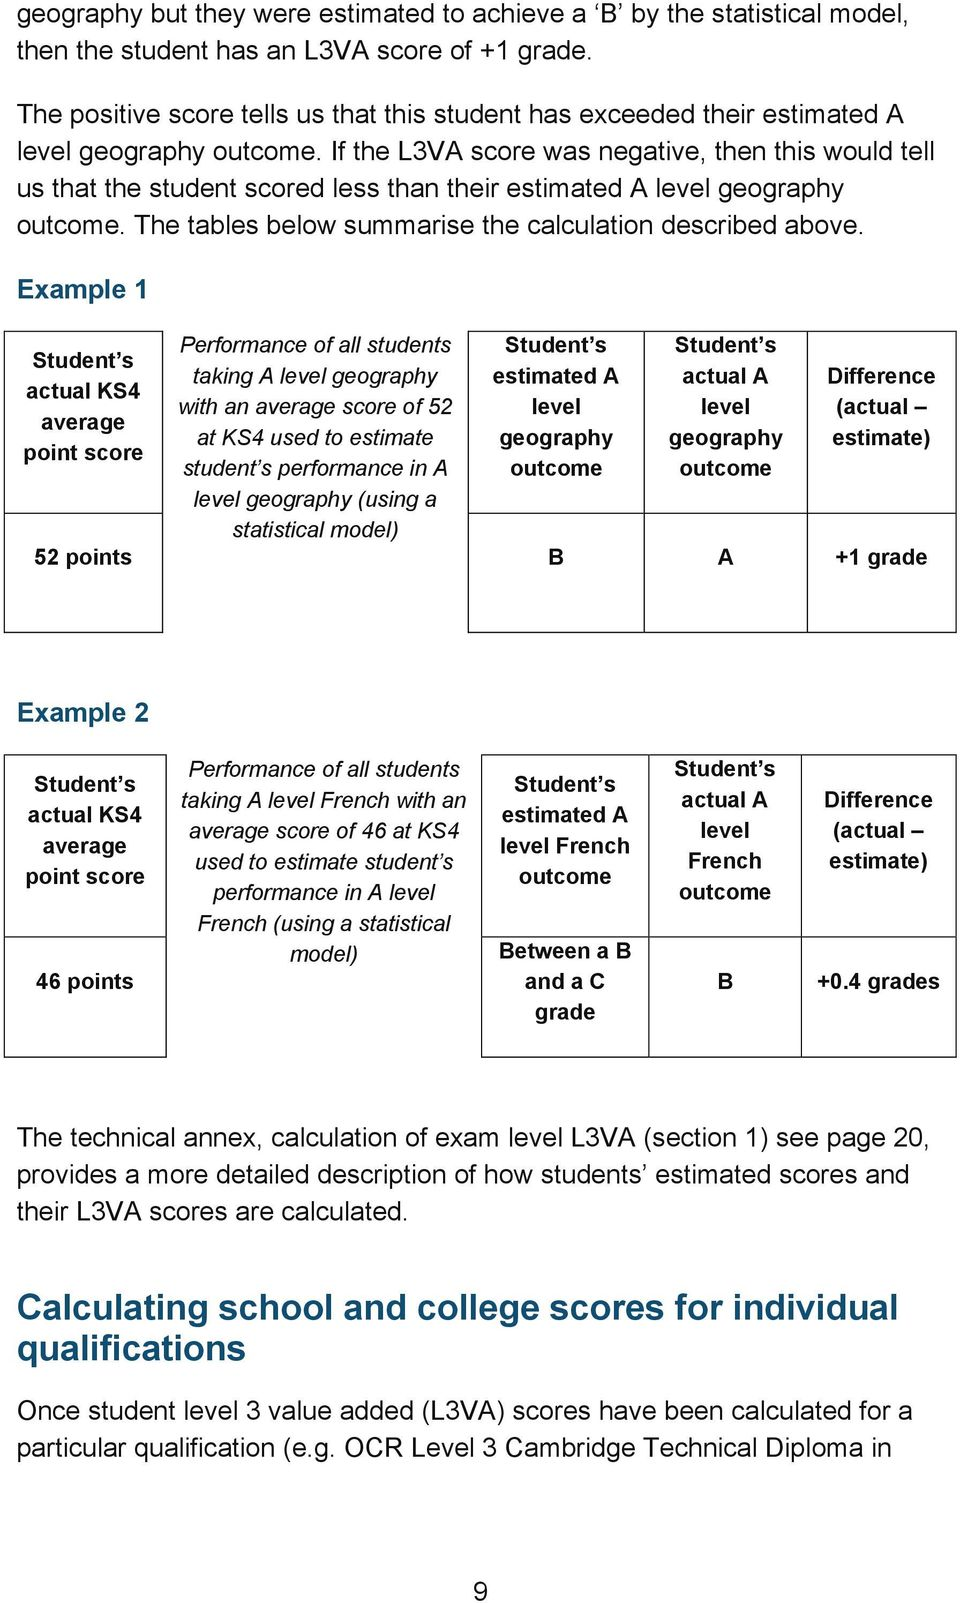 If the L3VA score was negative, then this would tell us that the student scored less than their estimated A level geography outcome. The tables below summarise the calculation described above.